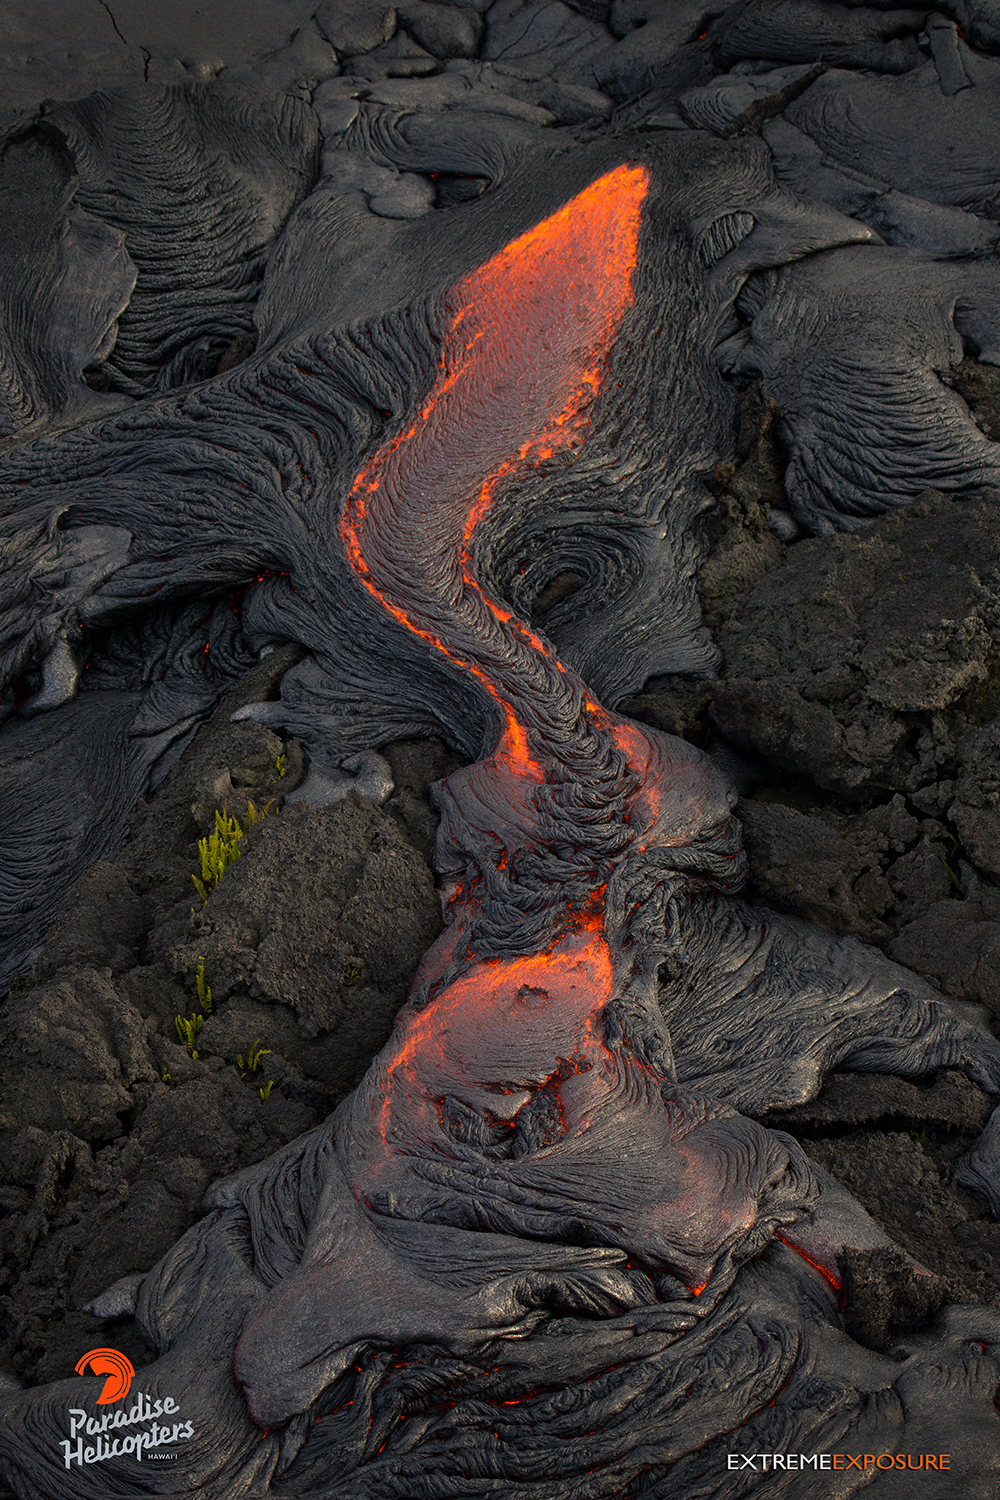 paradise helicopters kona with June 27 Lava Flow Update 31715 on Four Seasons Resort Maui Unforgettable Experiences besides Kona Volcano By Air Land together with Fletch Photography also Oahu Helicopter Tours Hawaii besides June 27 Lava Flow Update 31715.